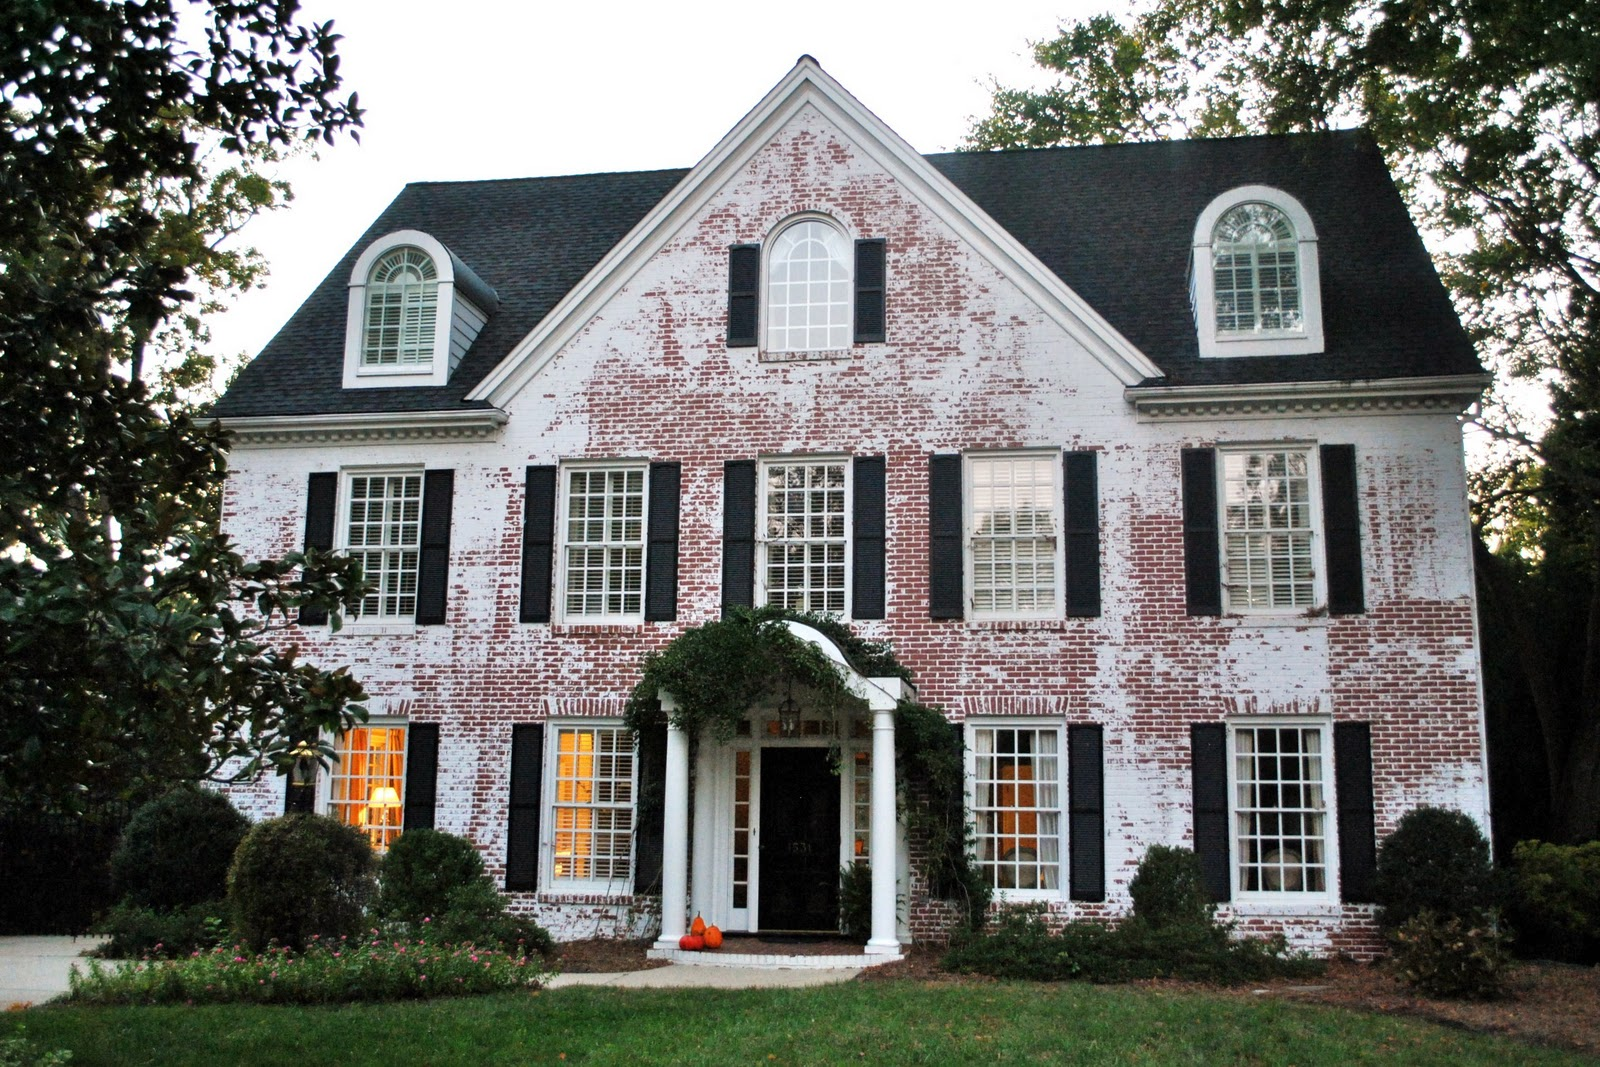 Sophia 39 s raleigh historic home walking tour - How to paint brick house exterior ...